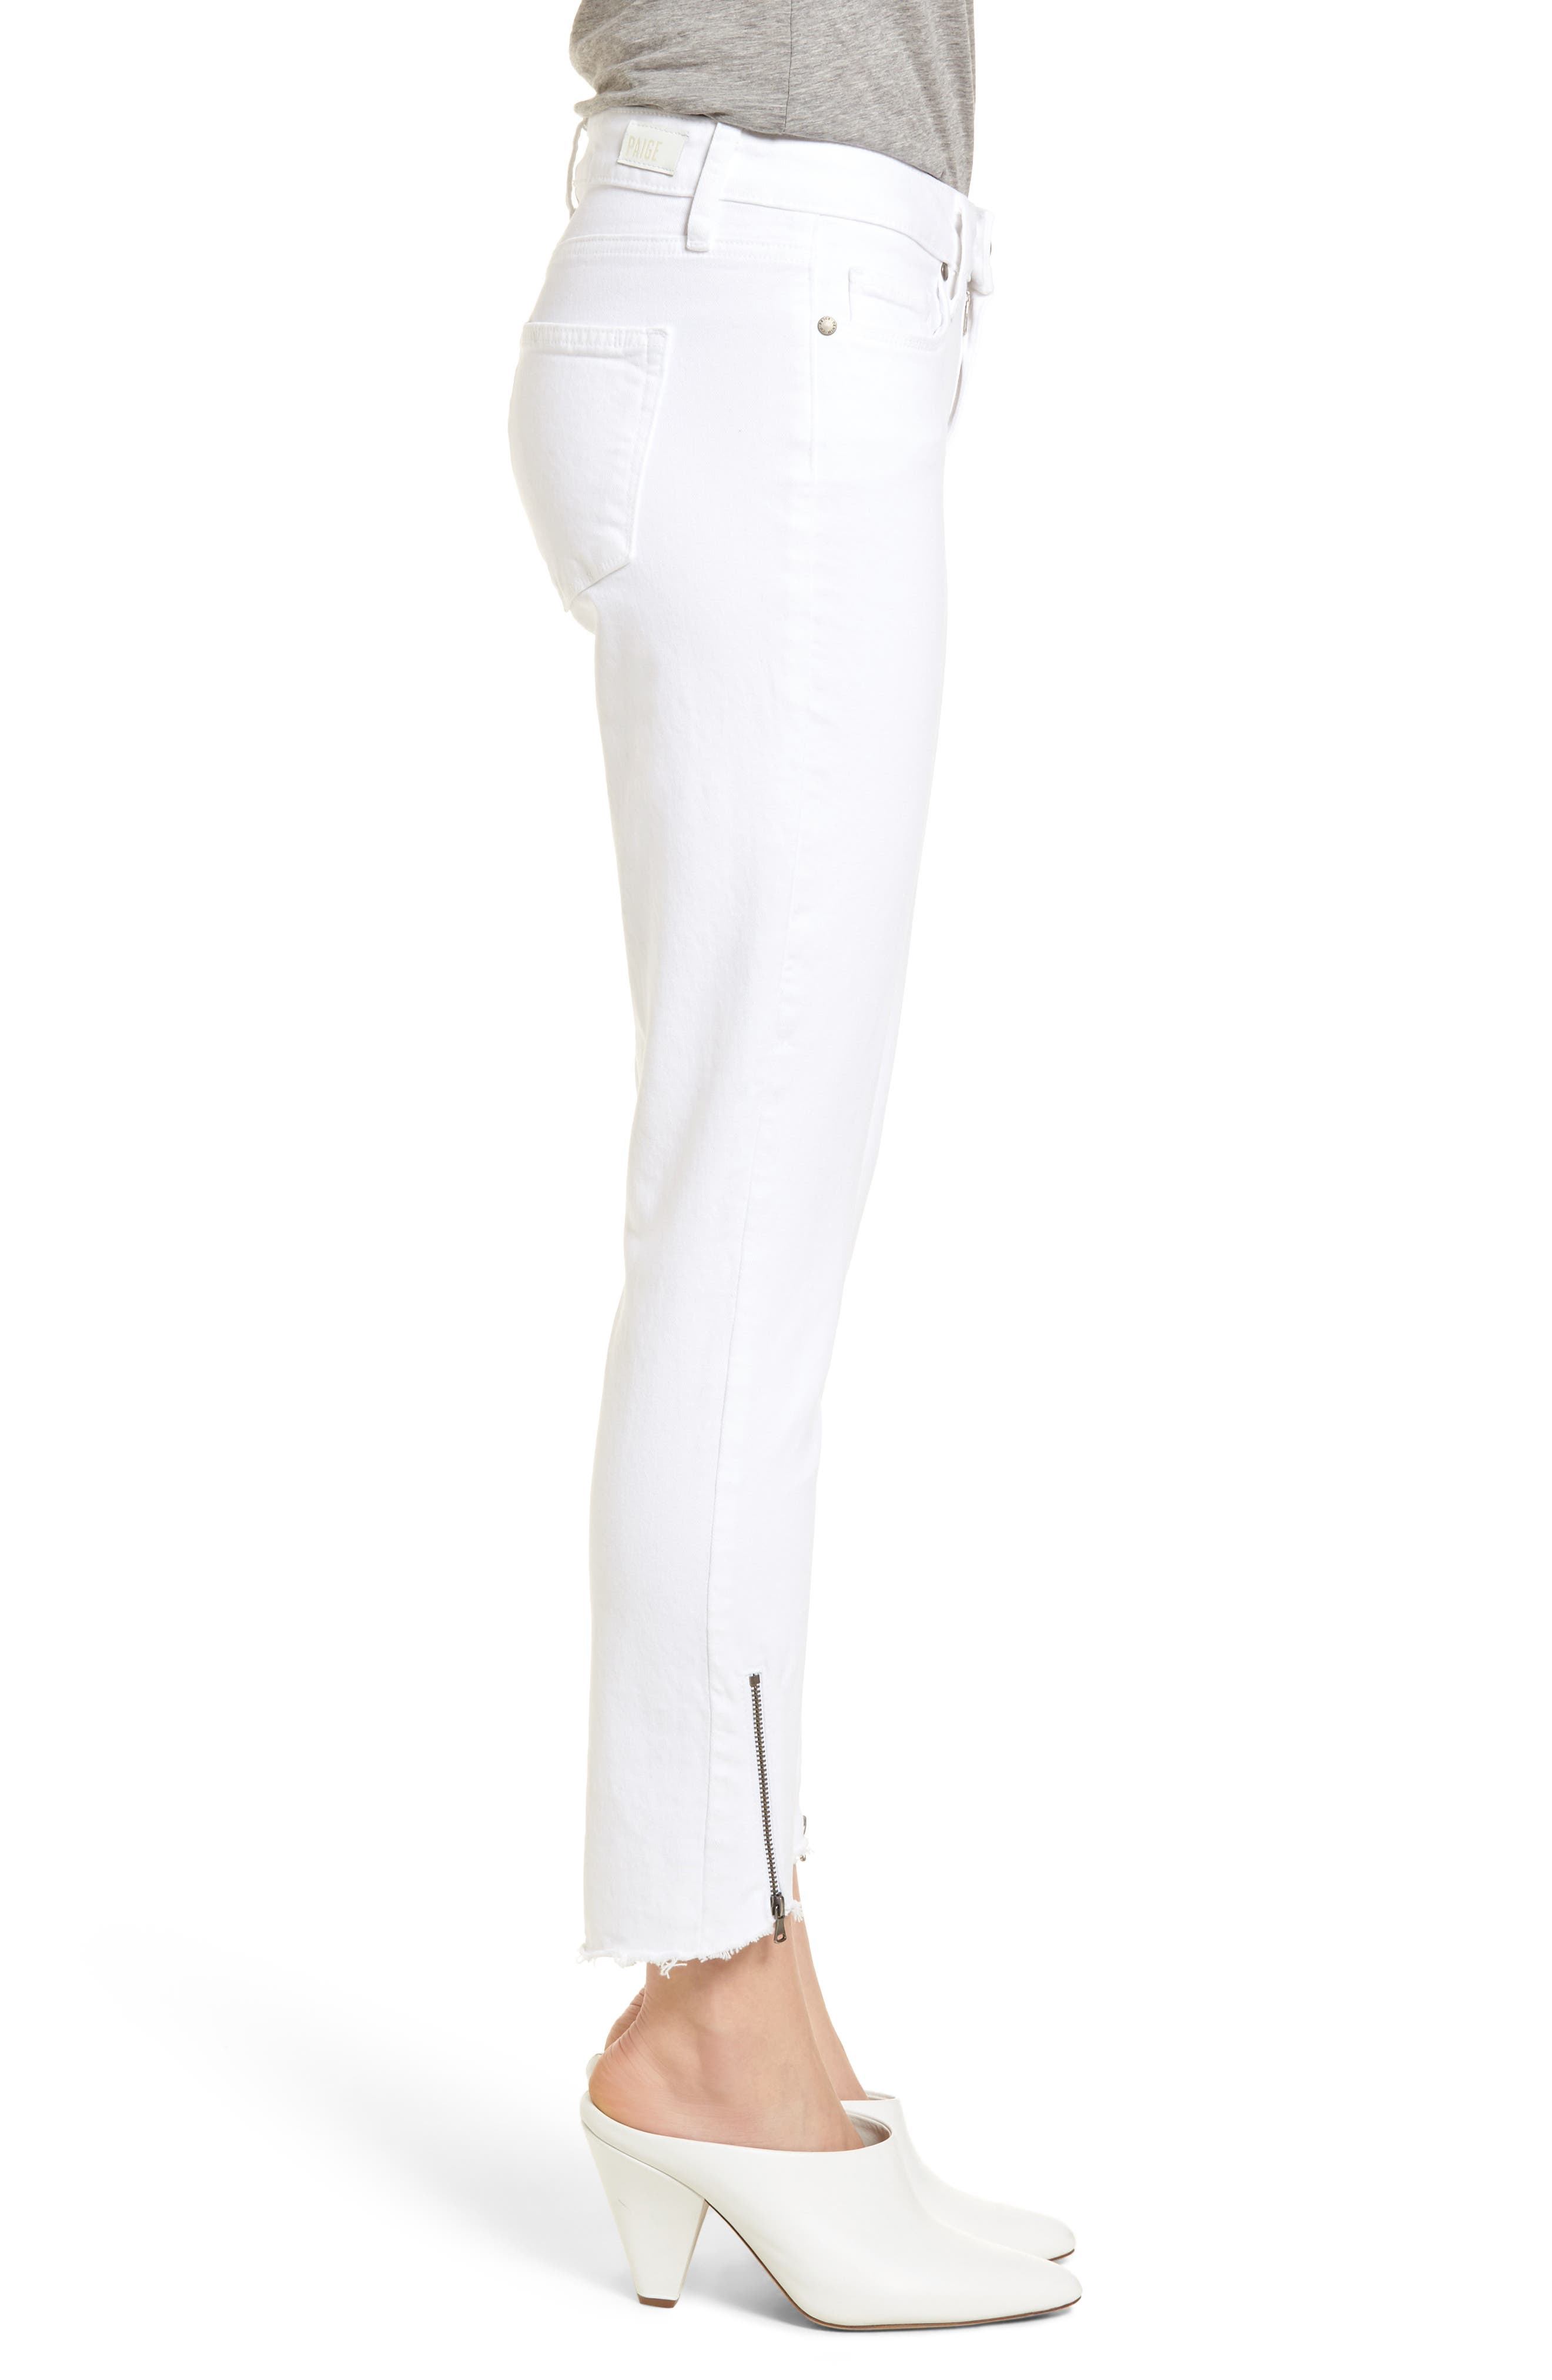 Verdugo Crop Ultra Skinny Jeans,                             Alternate thumbnail 3, color,                             100